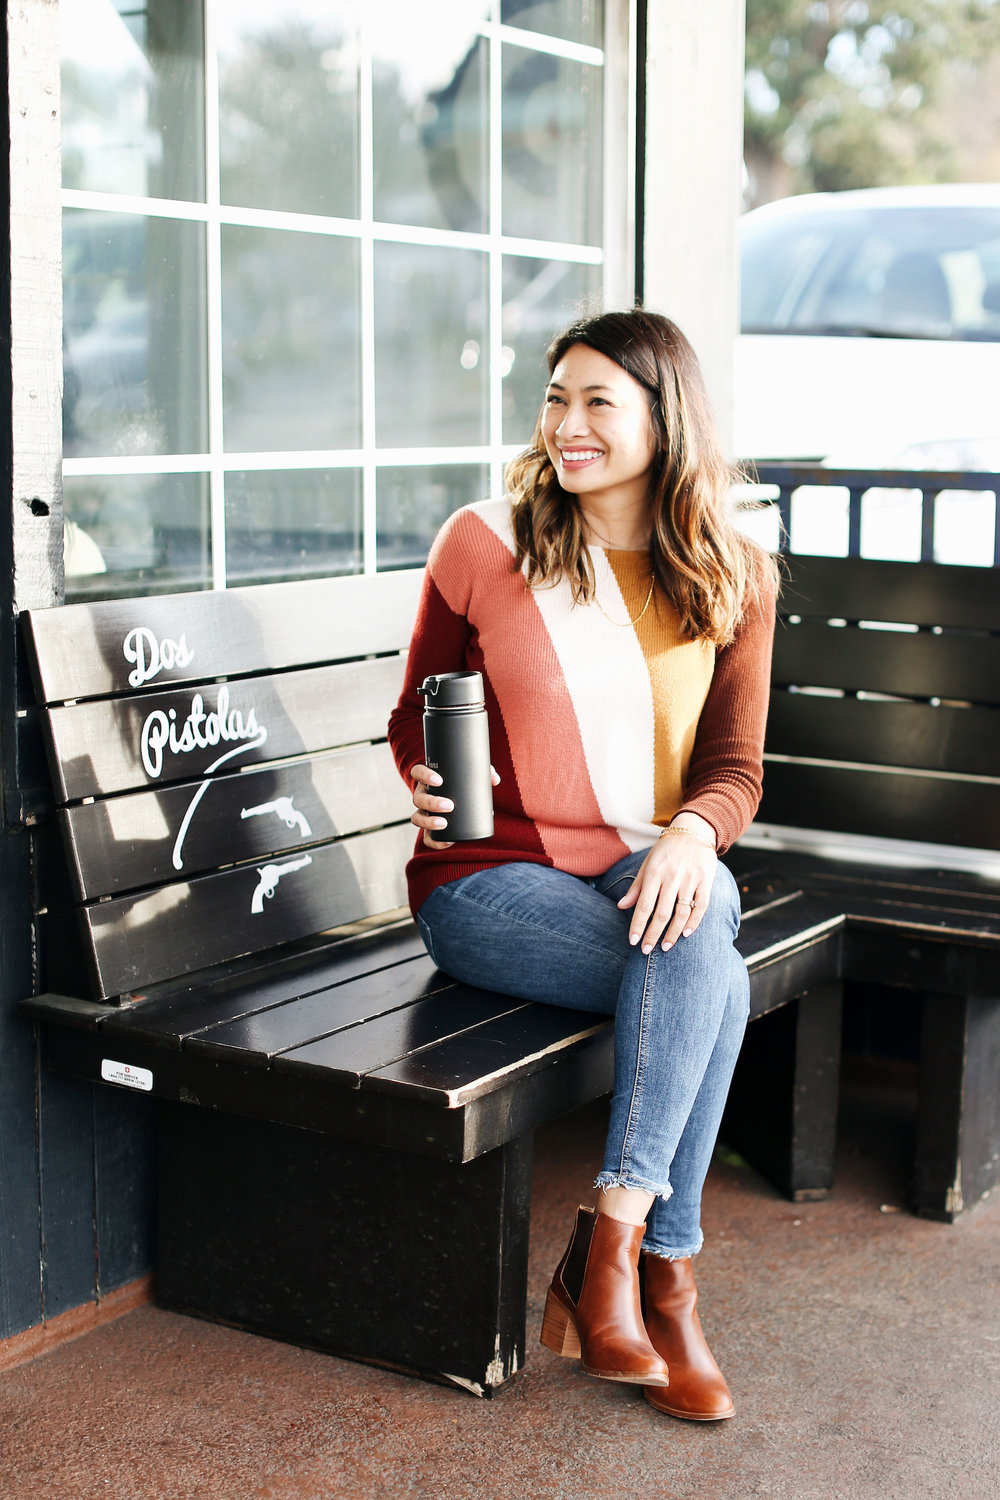 Colorful Sezane jumper | A Week Of Polished & Professional Outfits With Sustainable Lifestyle Blogger Jonilyn Brown on The Good Trade